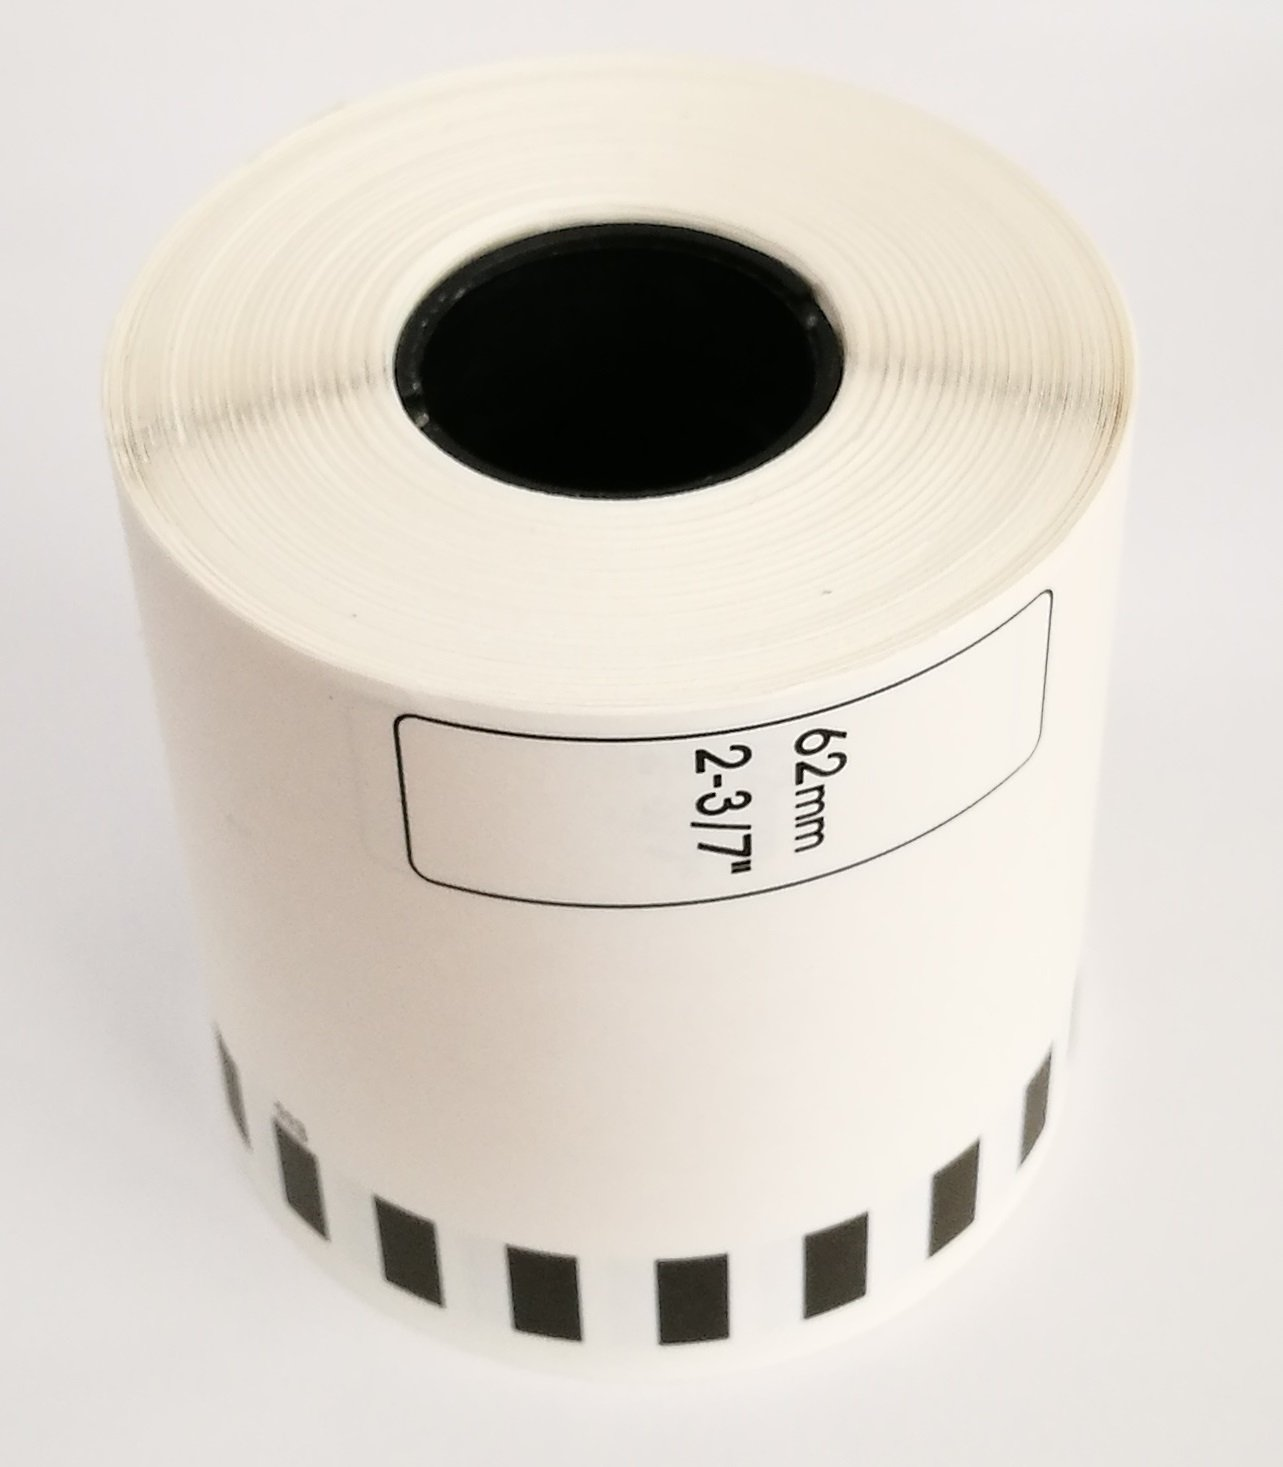 Brother-Compatible DK2113 DK-2113 Black on Clear Continuous Length Film Tape (10 rolls)